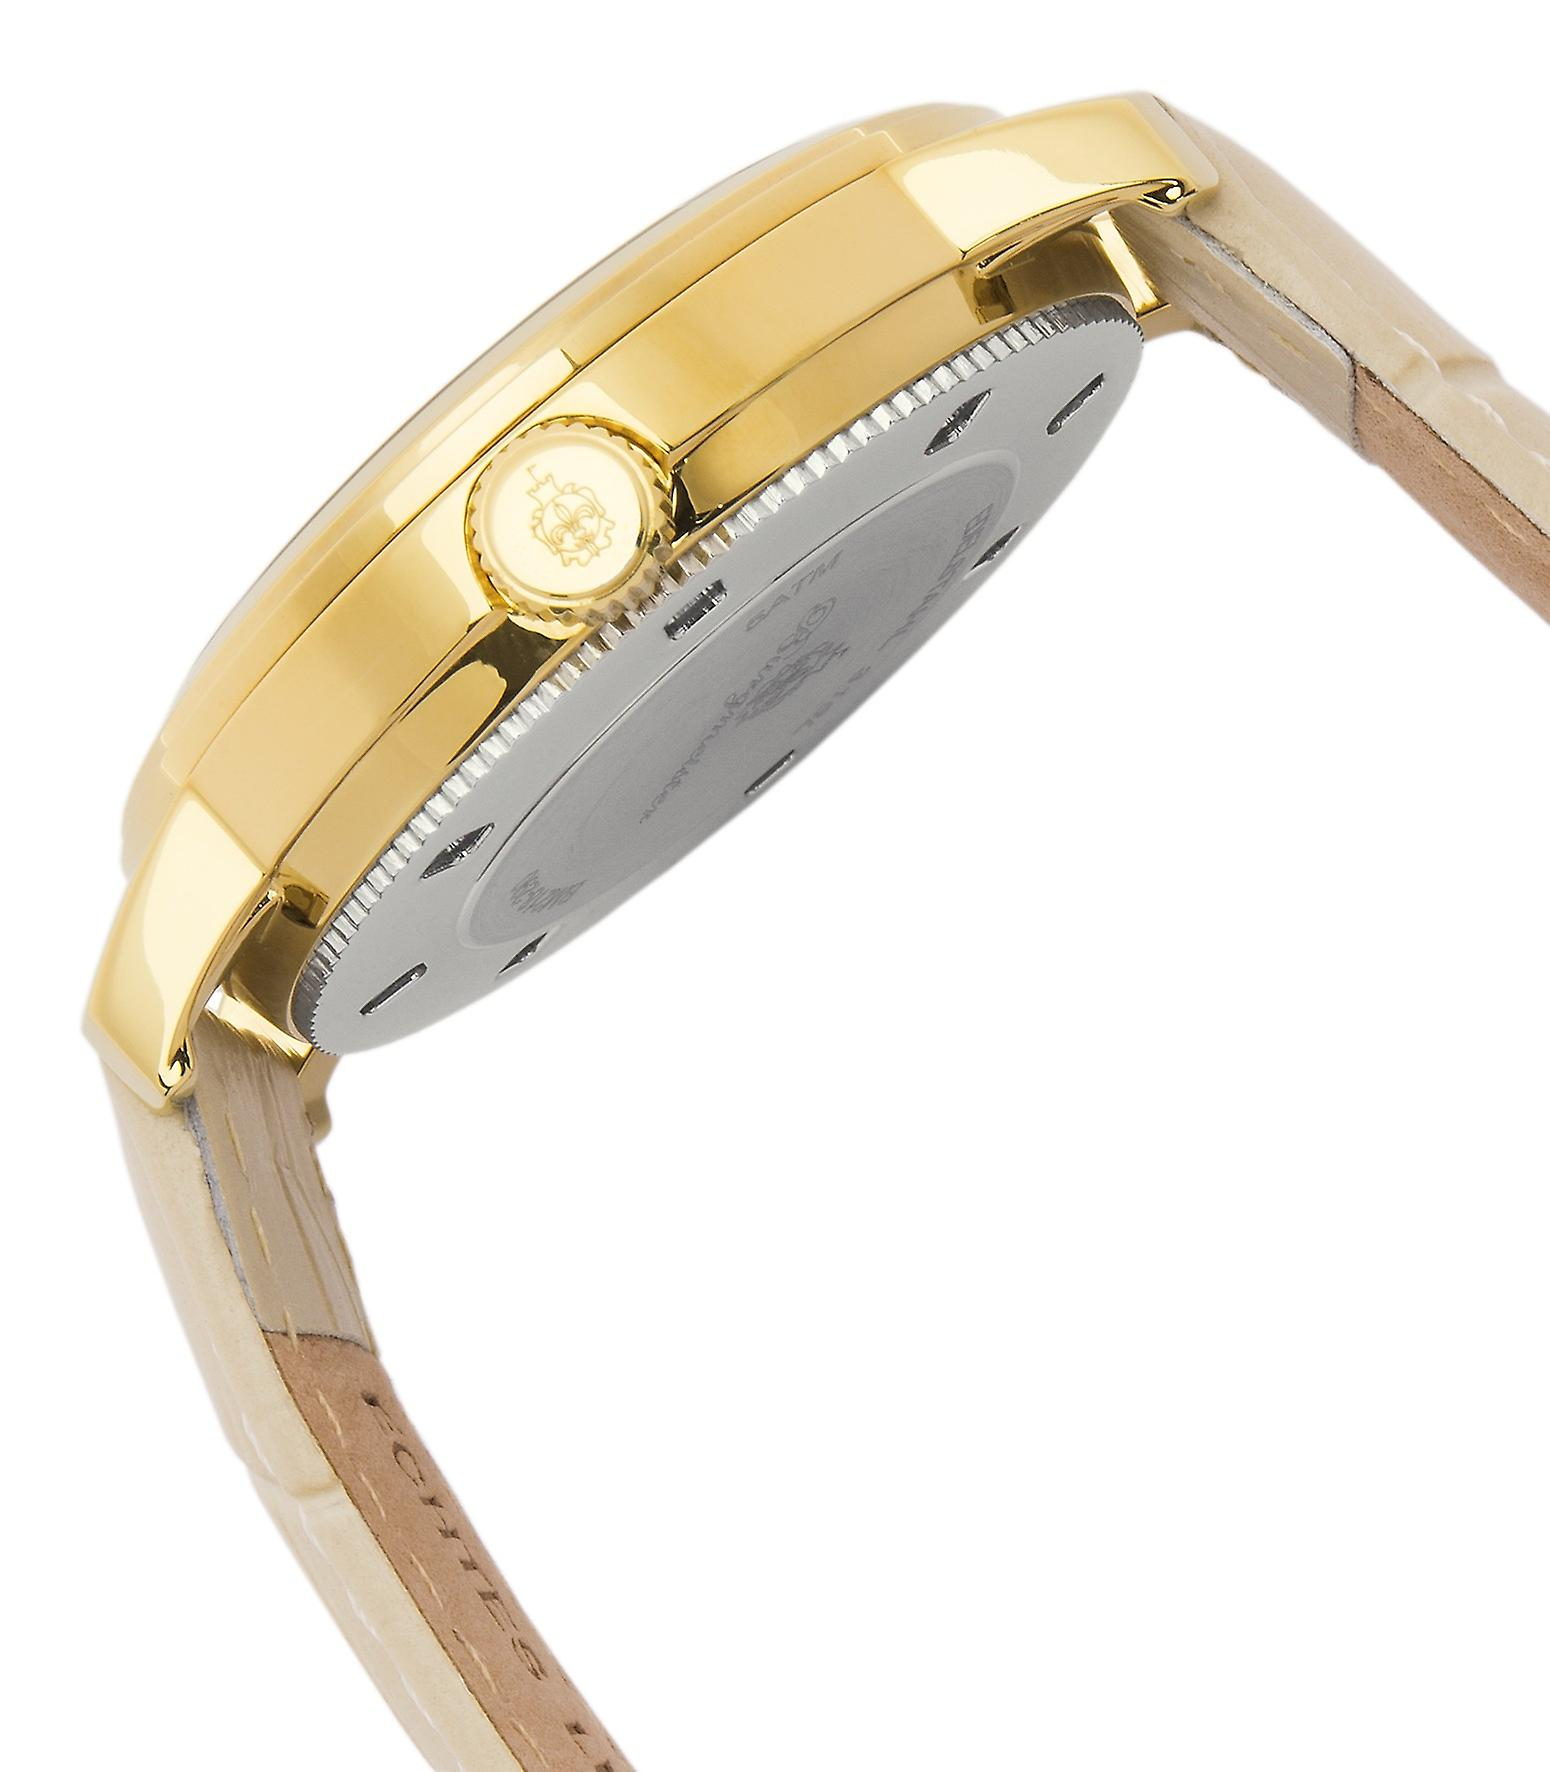 Burgmeister ladies quartz watch Baton Rouge, BM218-290